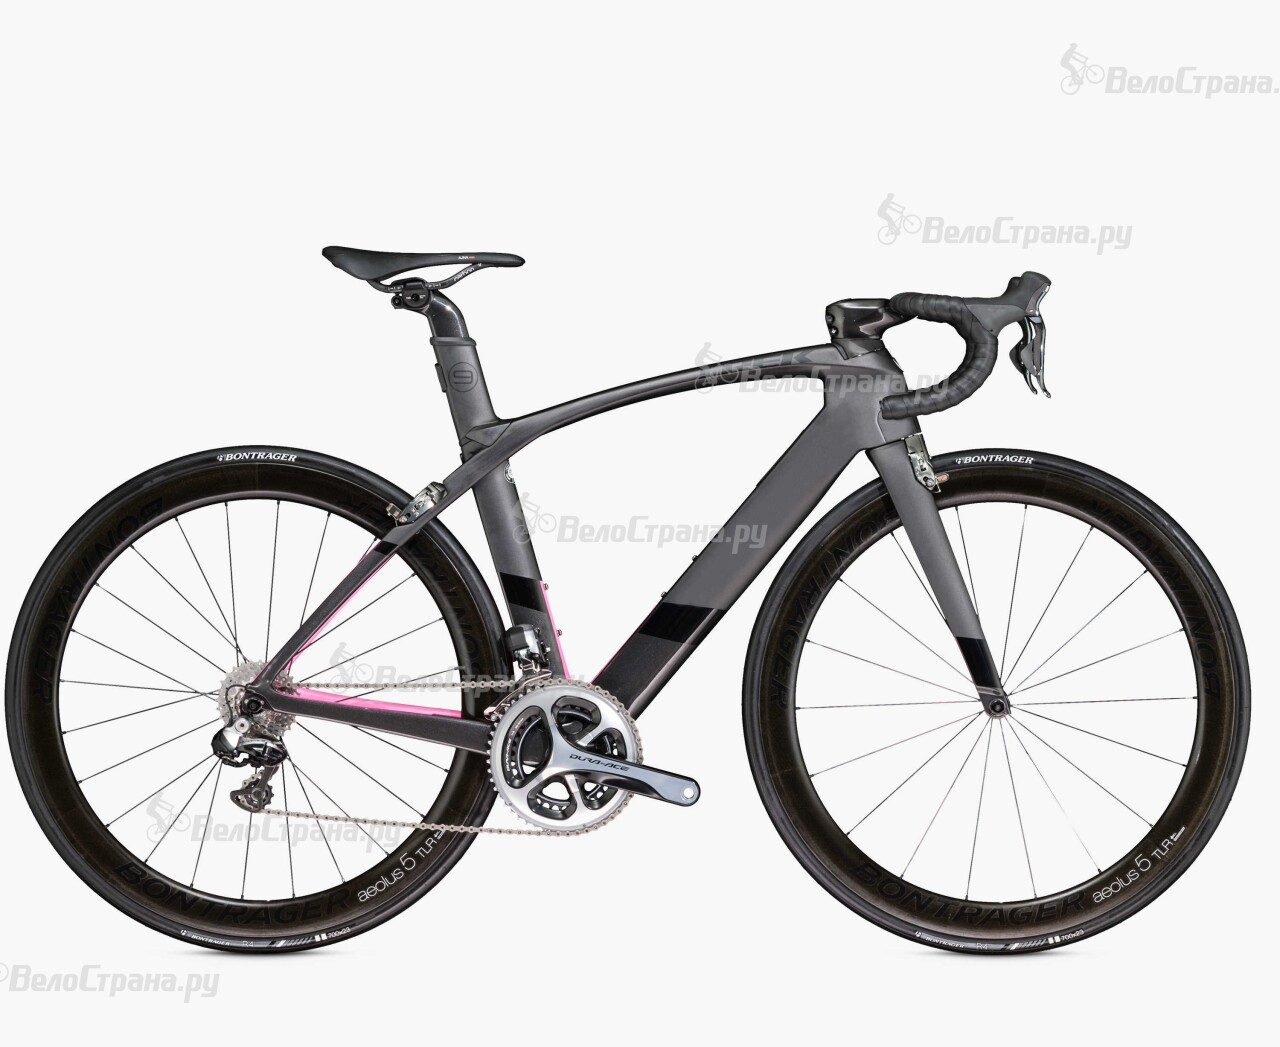 Велосипед Trek MADONE 9.9 WOMEN'S (2016) велосипед trek madone 9 5 c wsd udi2 2017